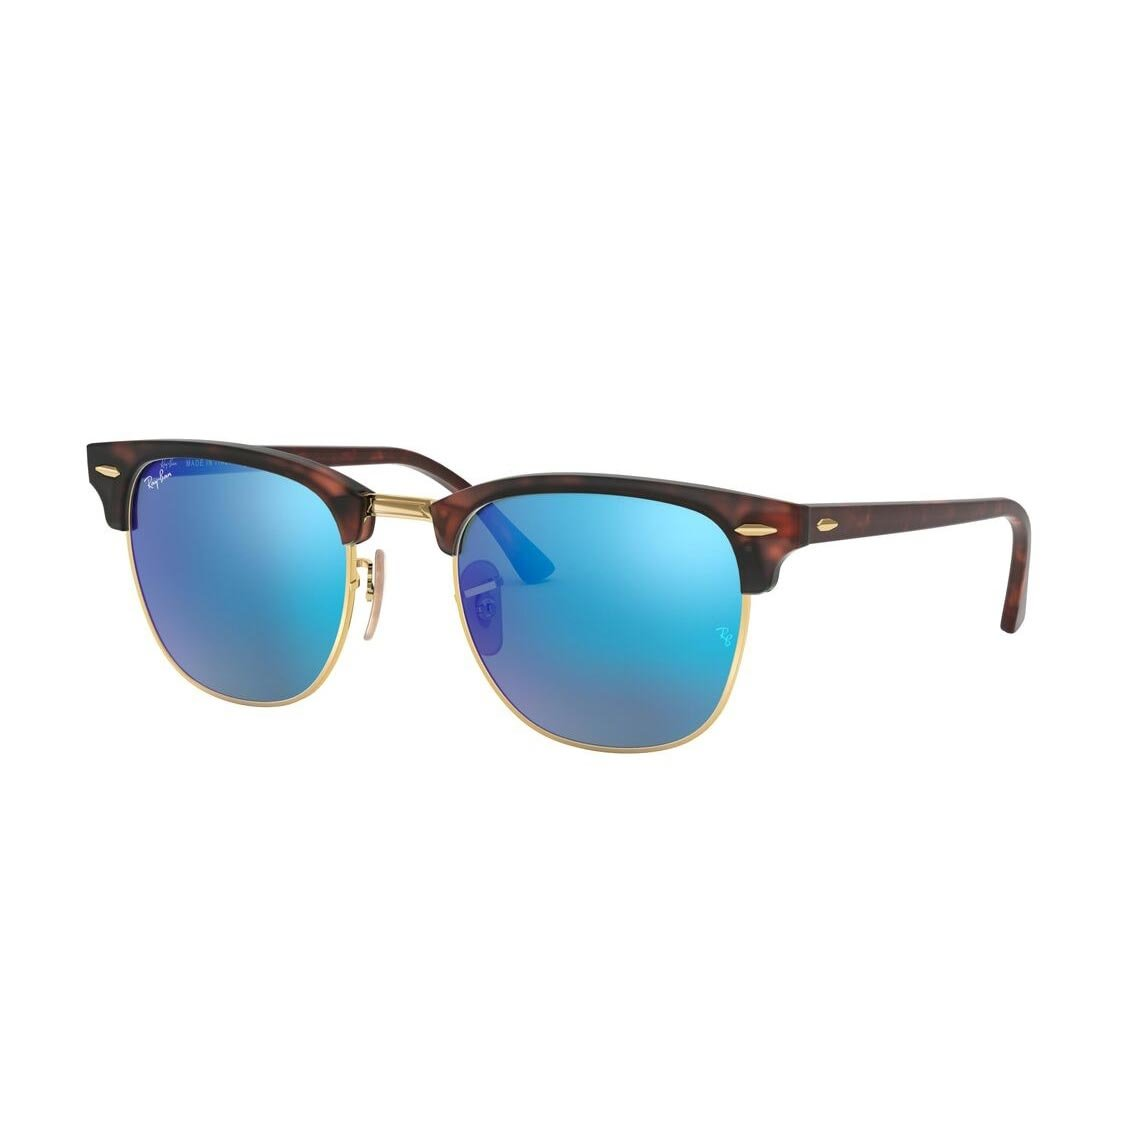 Ray-Ban Clubmaster RB3016 114517 49